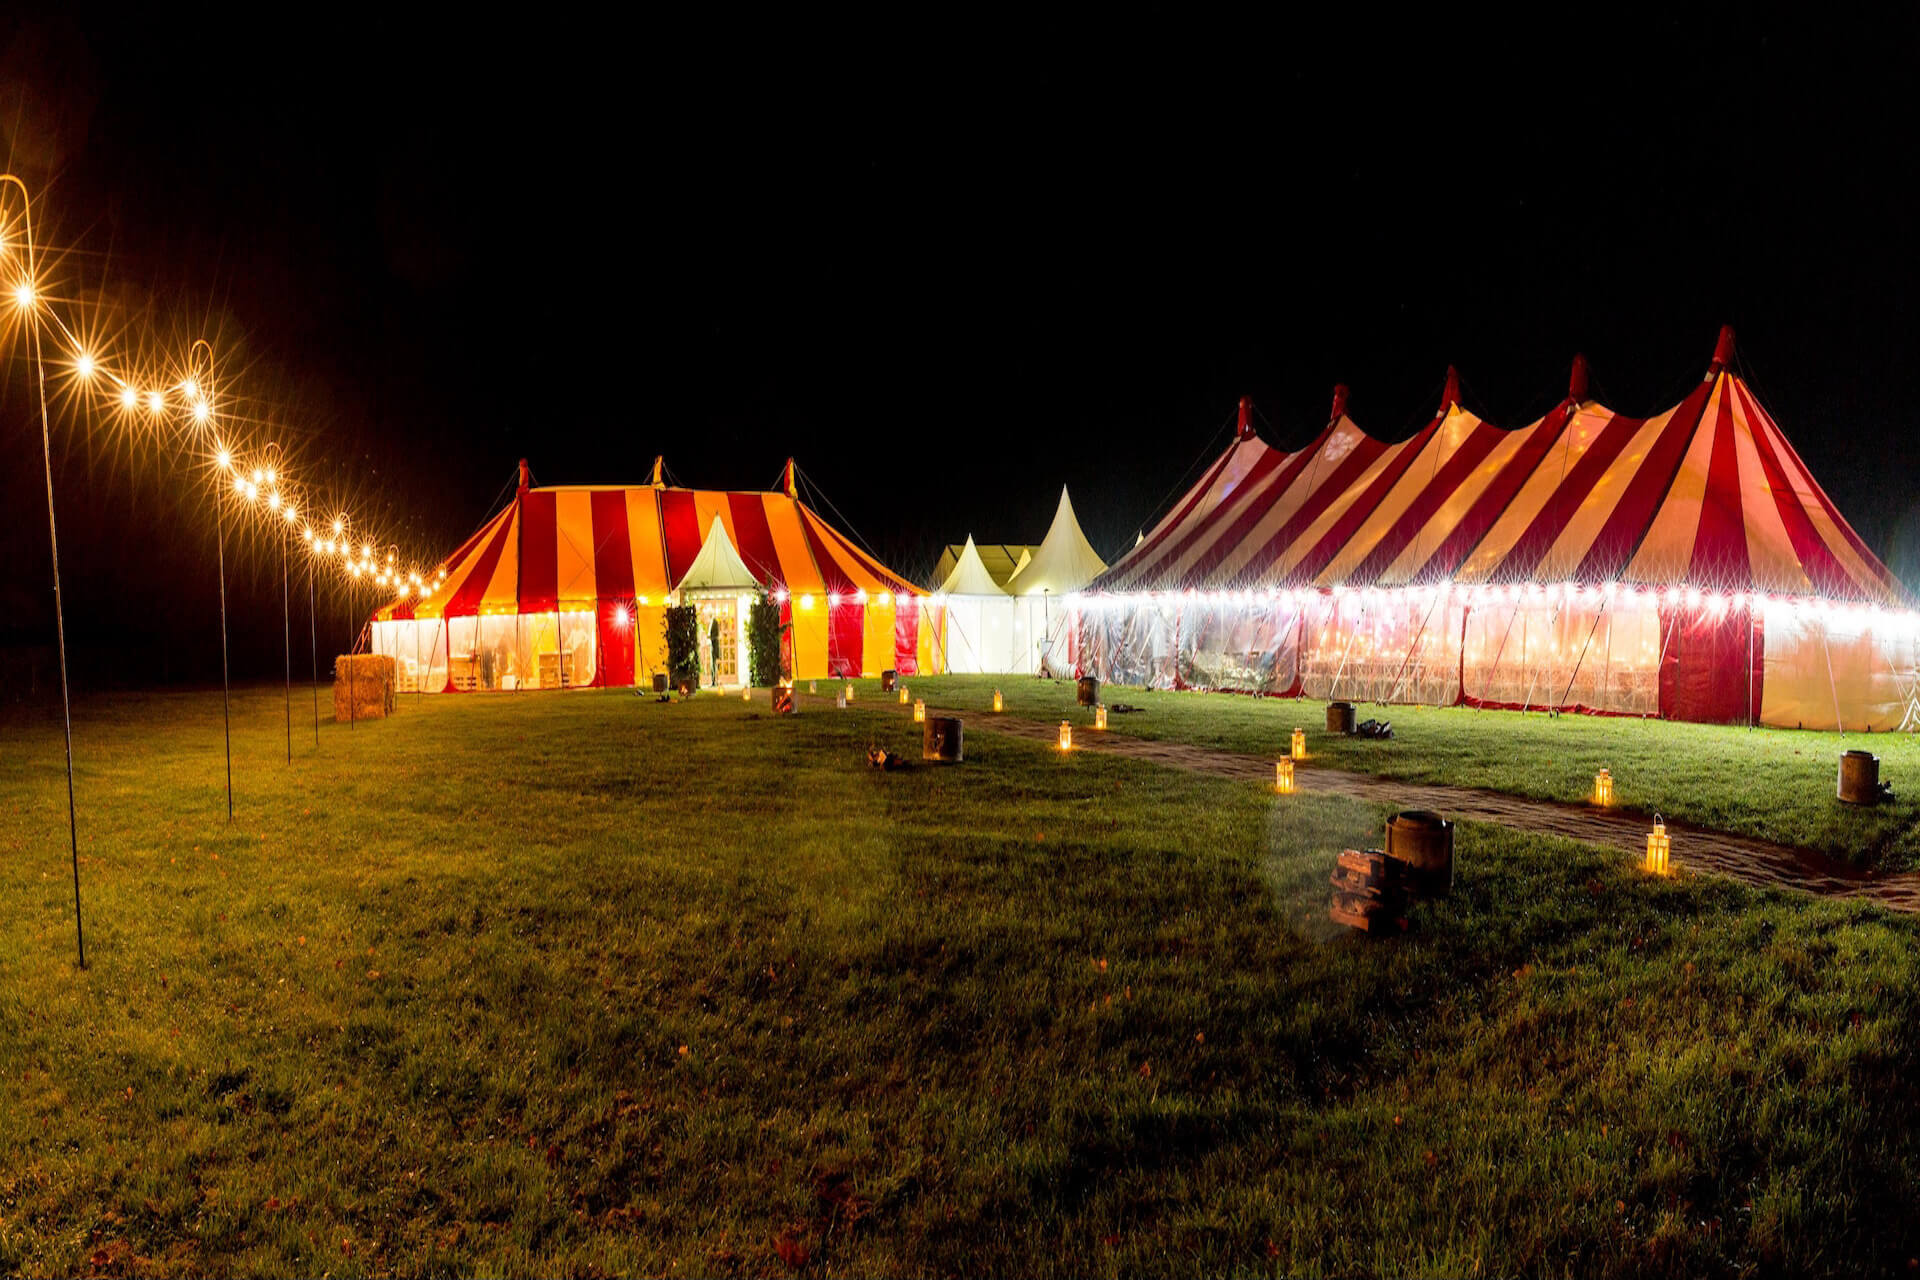 Colourful wedding tents at night